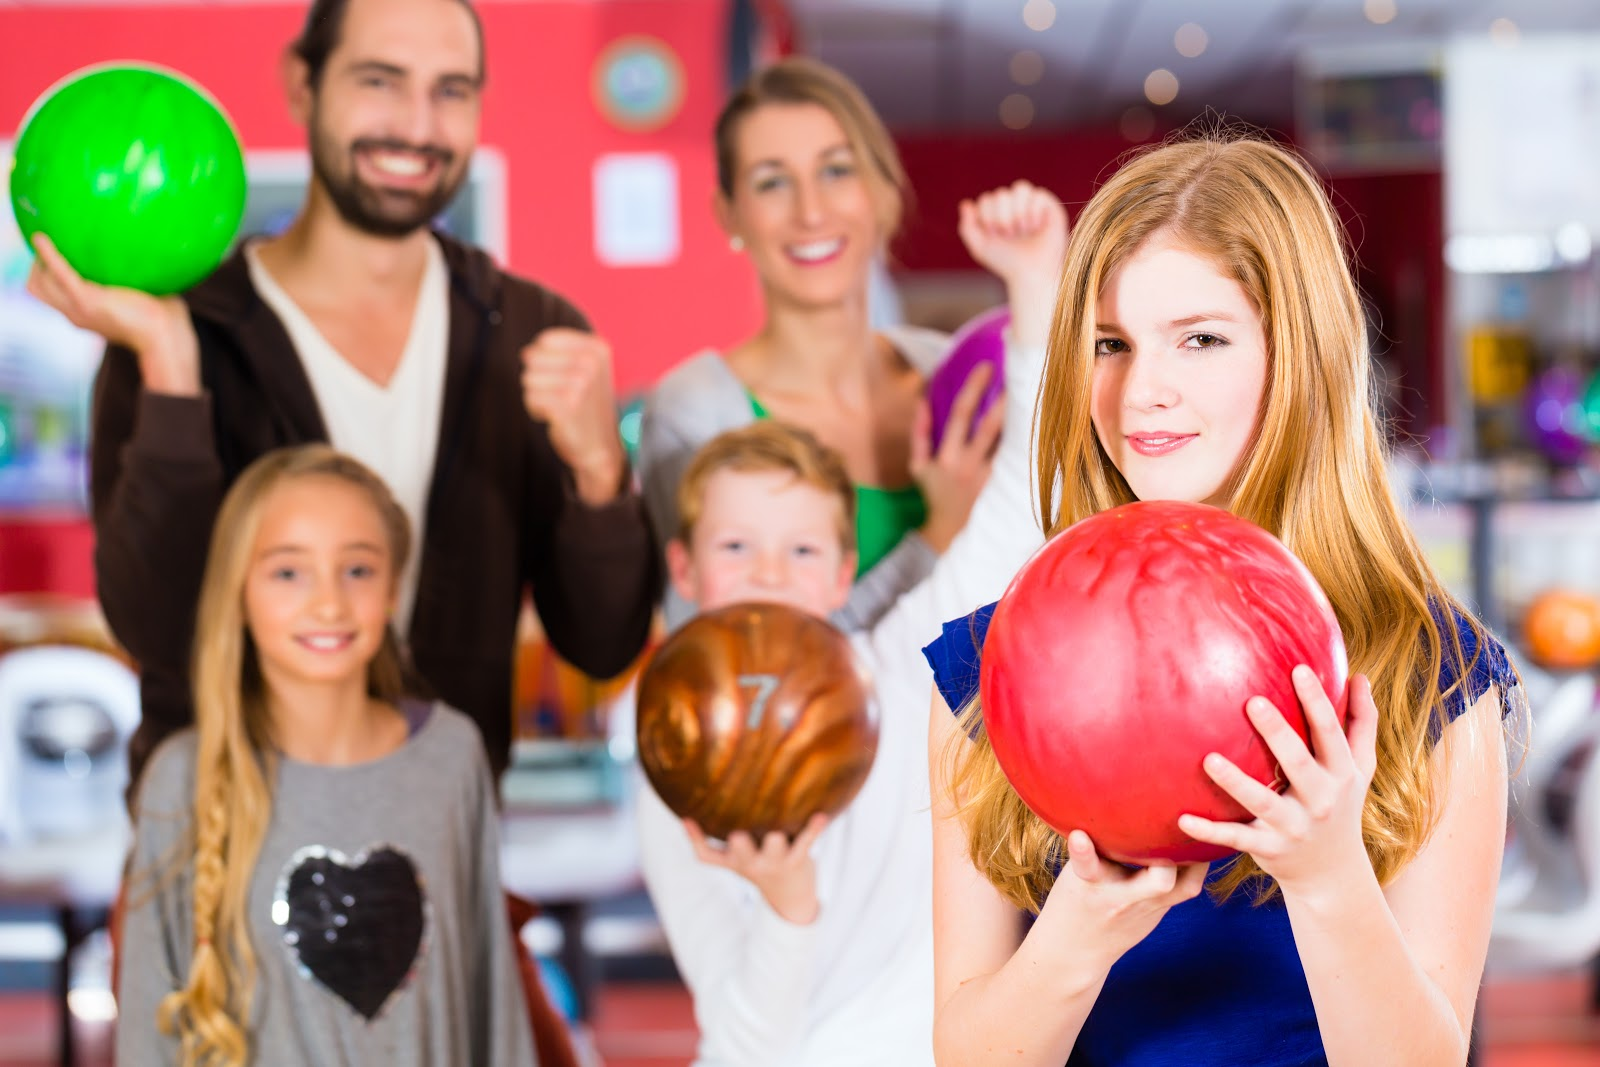 all-ages attractions | Family Bowling | Open Bowling | Open Play | Family Time | JB's on 41 | Milwaukee, WI